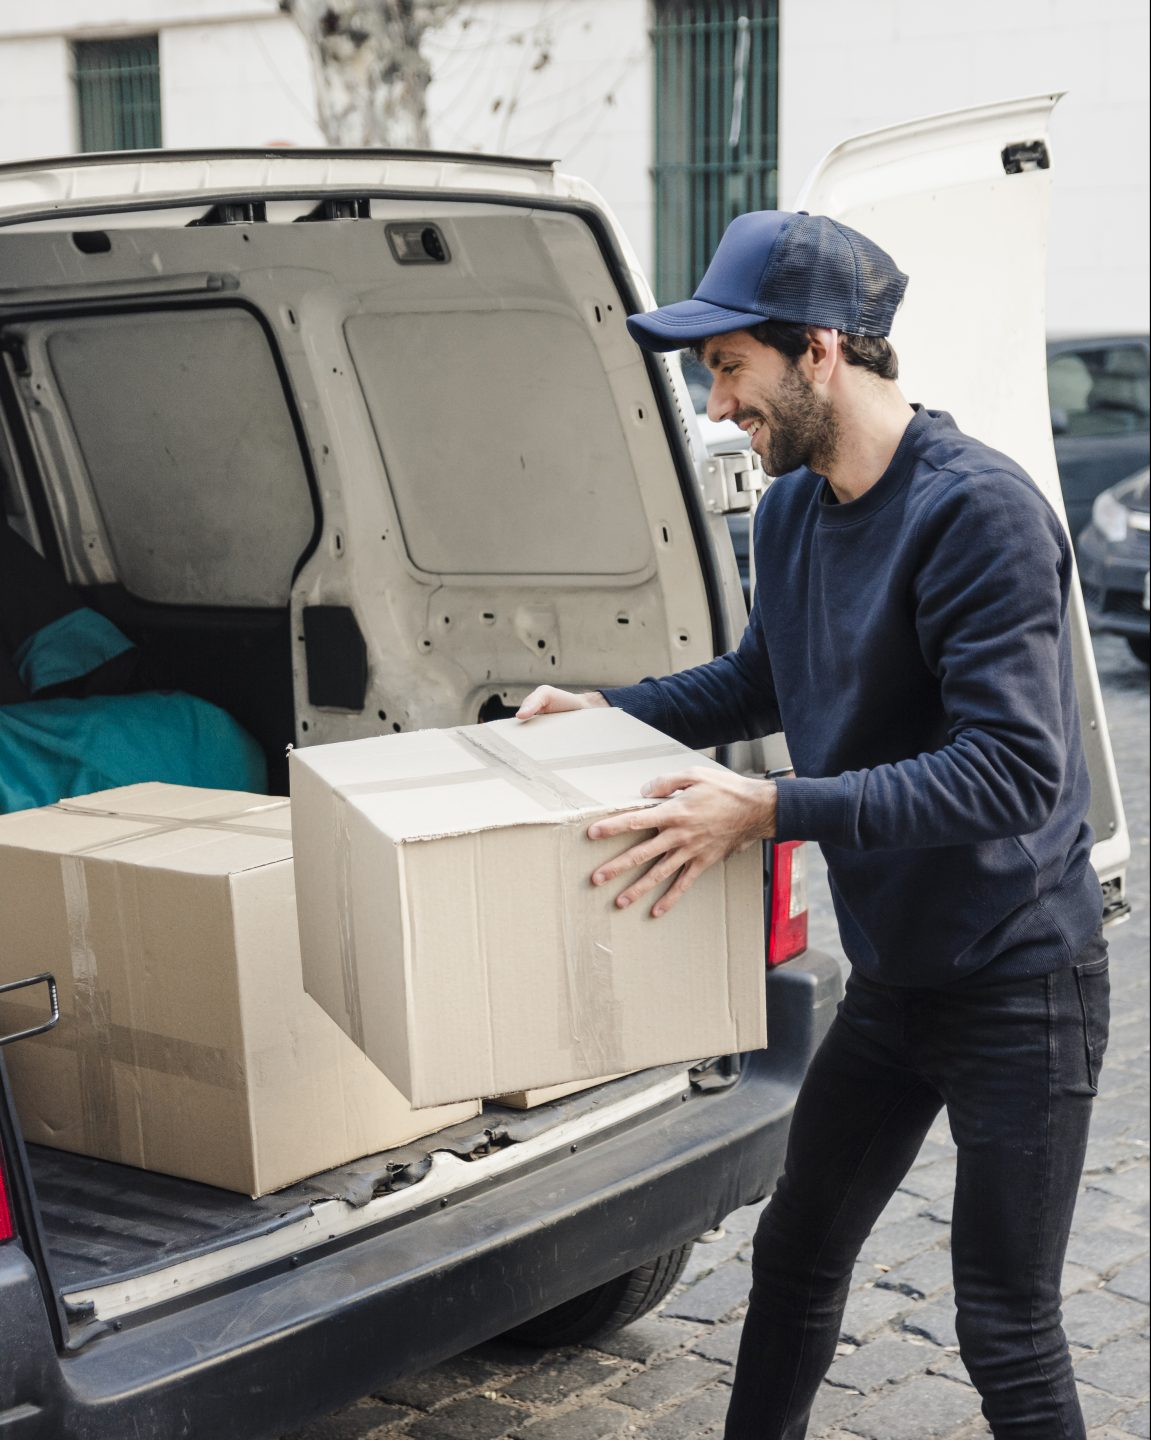 young man moving boxes into van